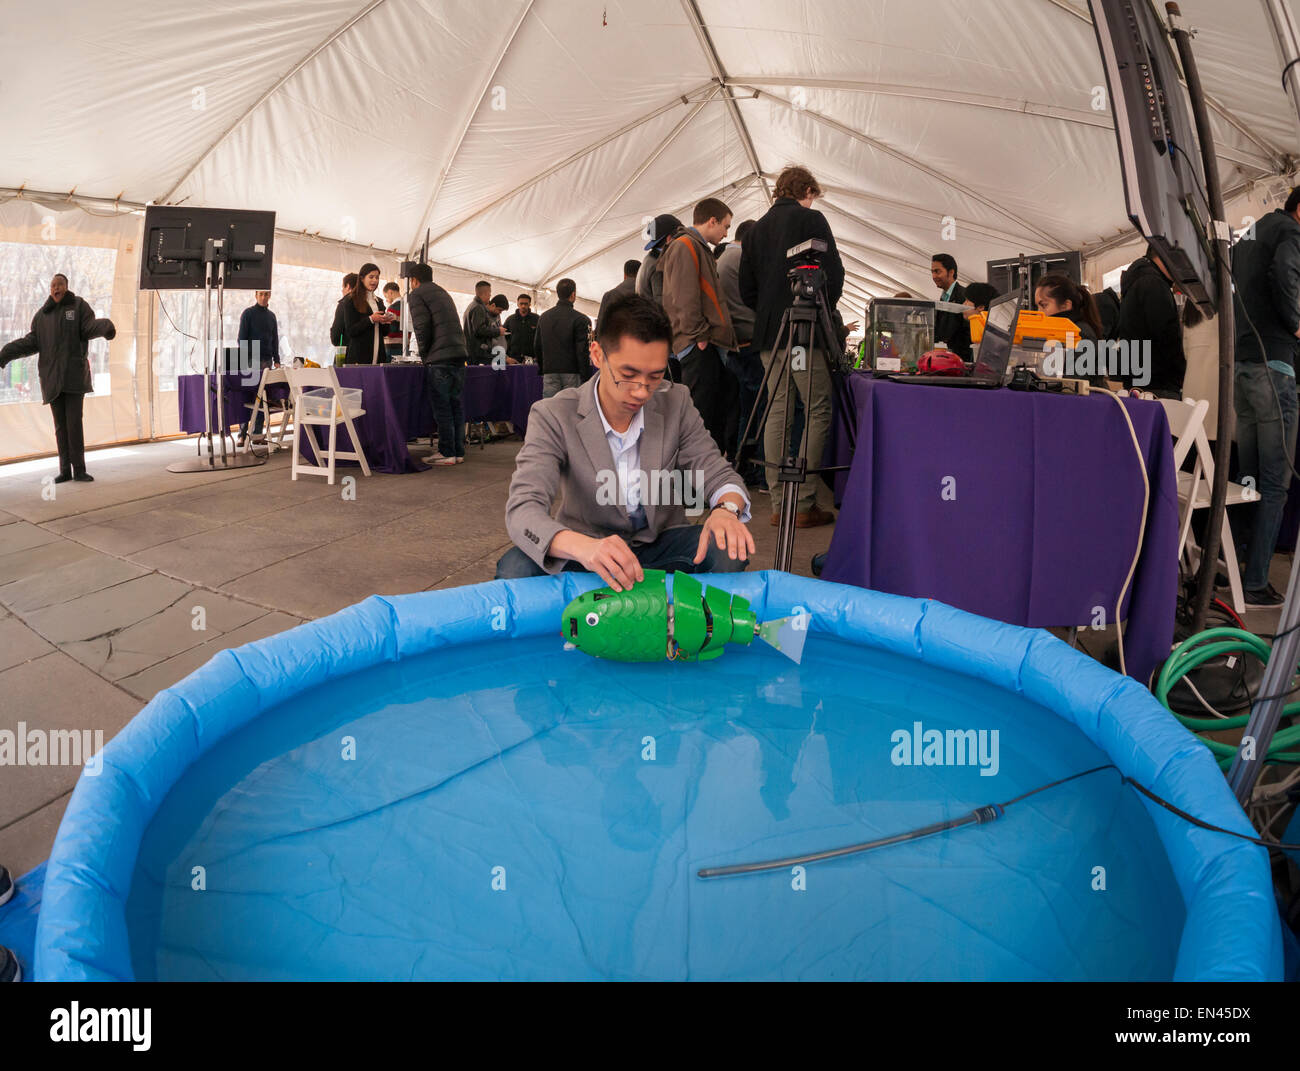 Ph.D candidate Paul Phamduy's adjusts his robotic fish, built in collaboration with other students, in a pool - Stock Image